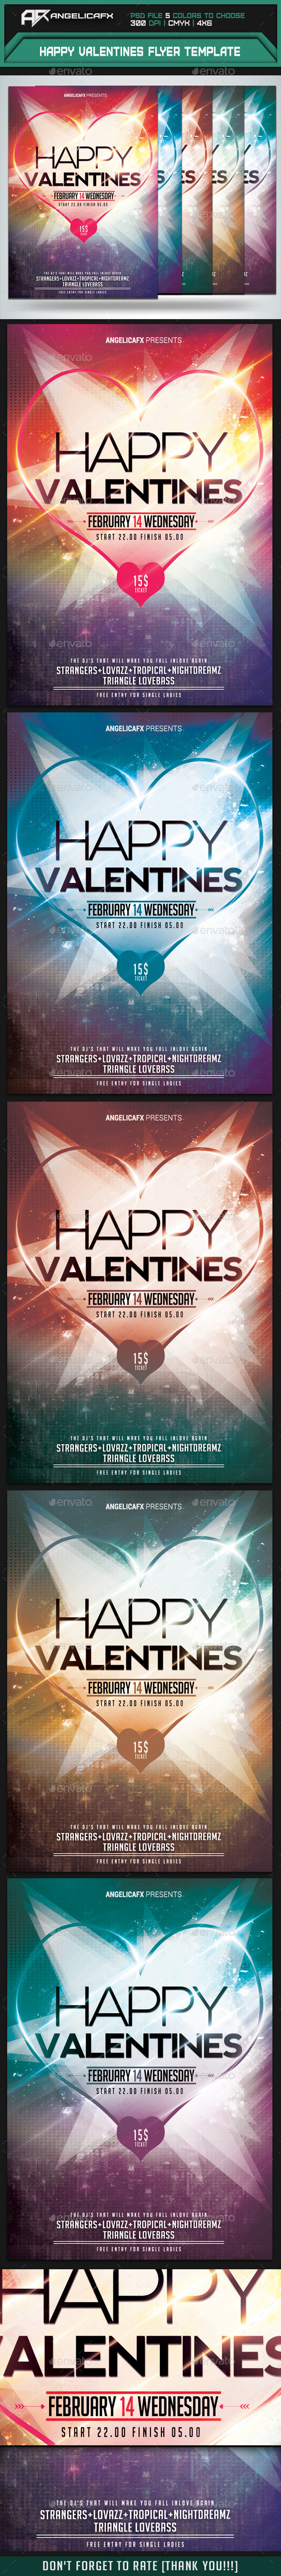 GraphicRiver Happy Valentines Flyer Template 9954536